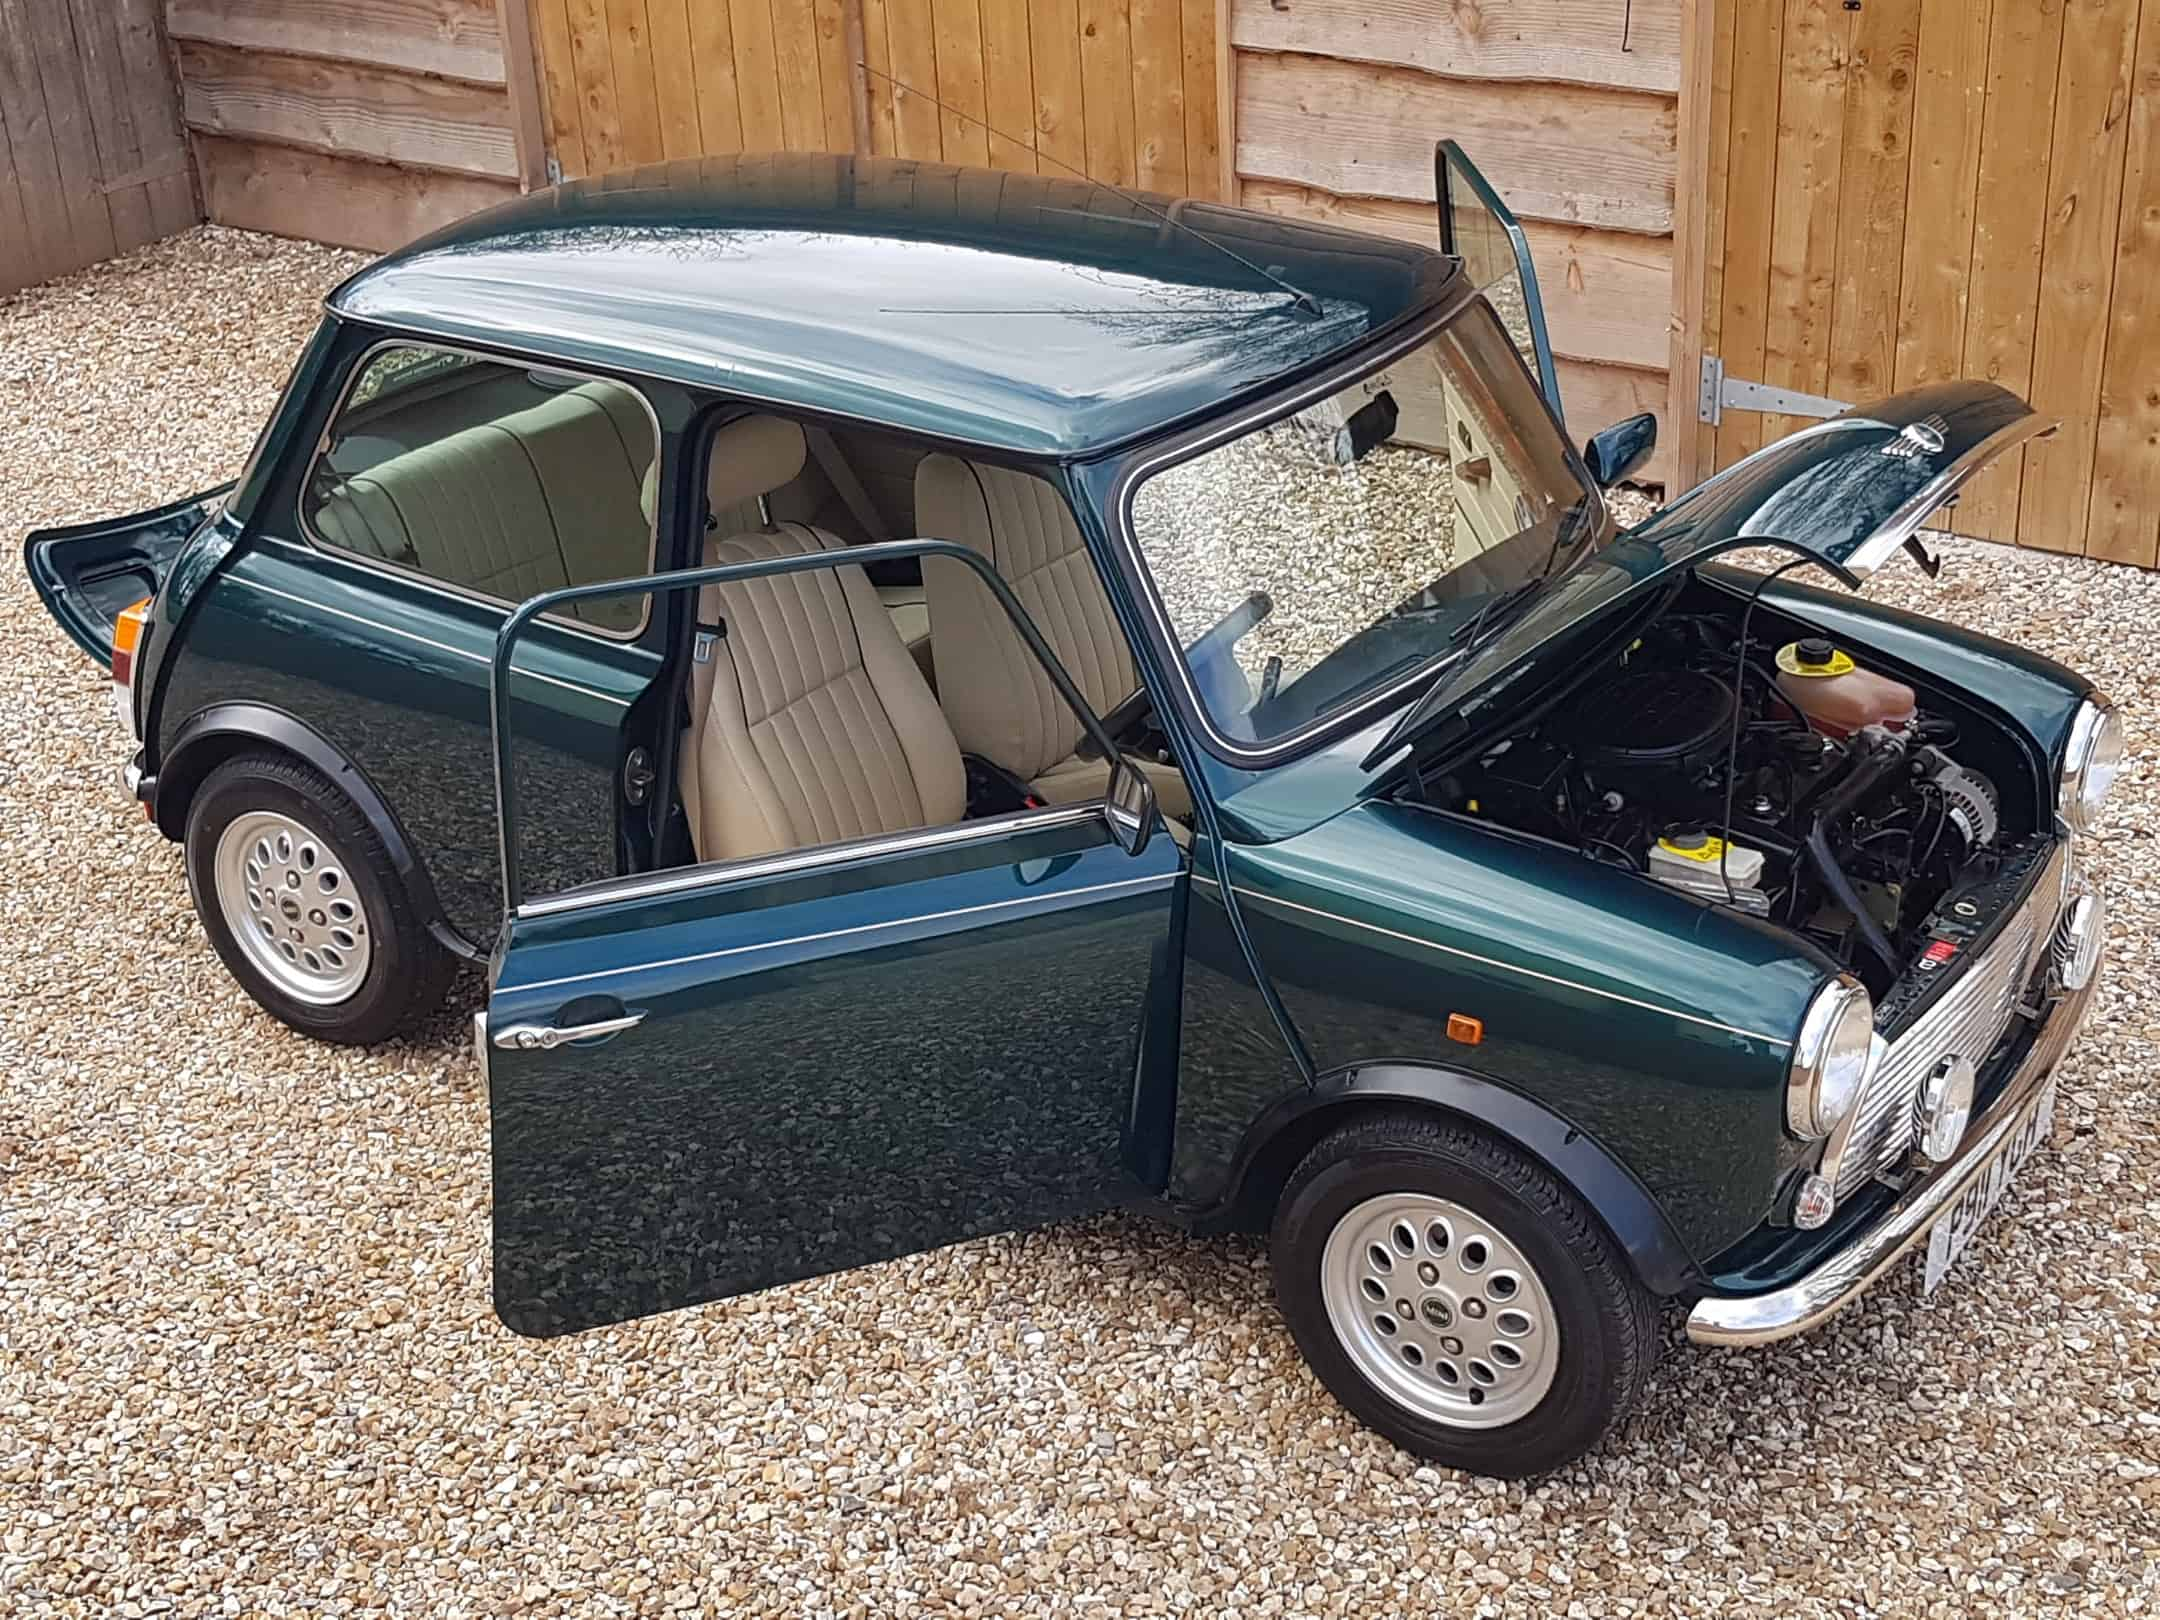 ** NOW SOLD ** Rover Mini 1.3 MPI On Just 7600 Miles From New!!